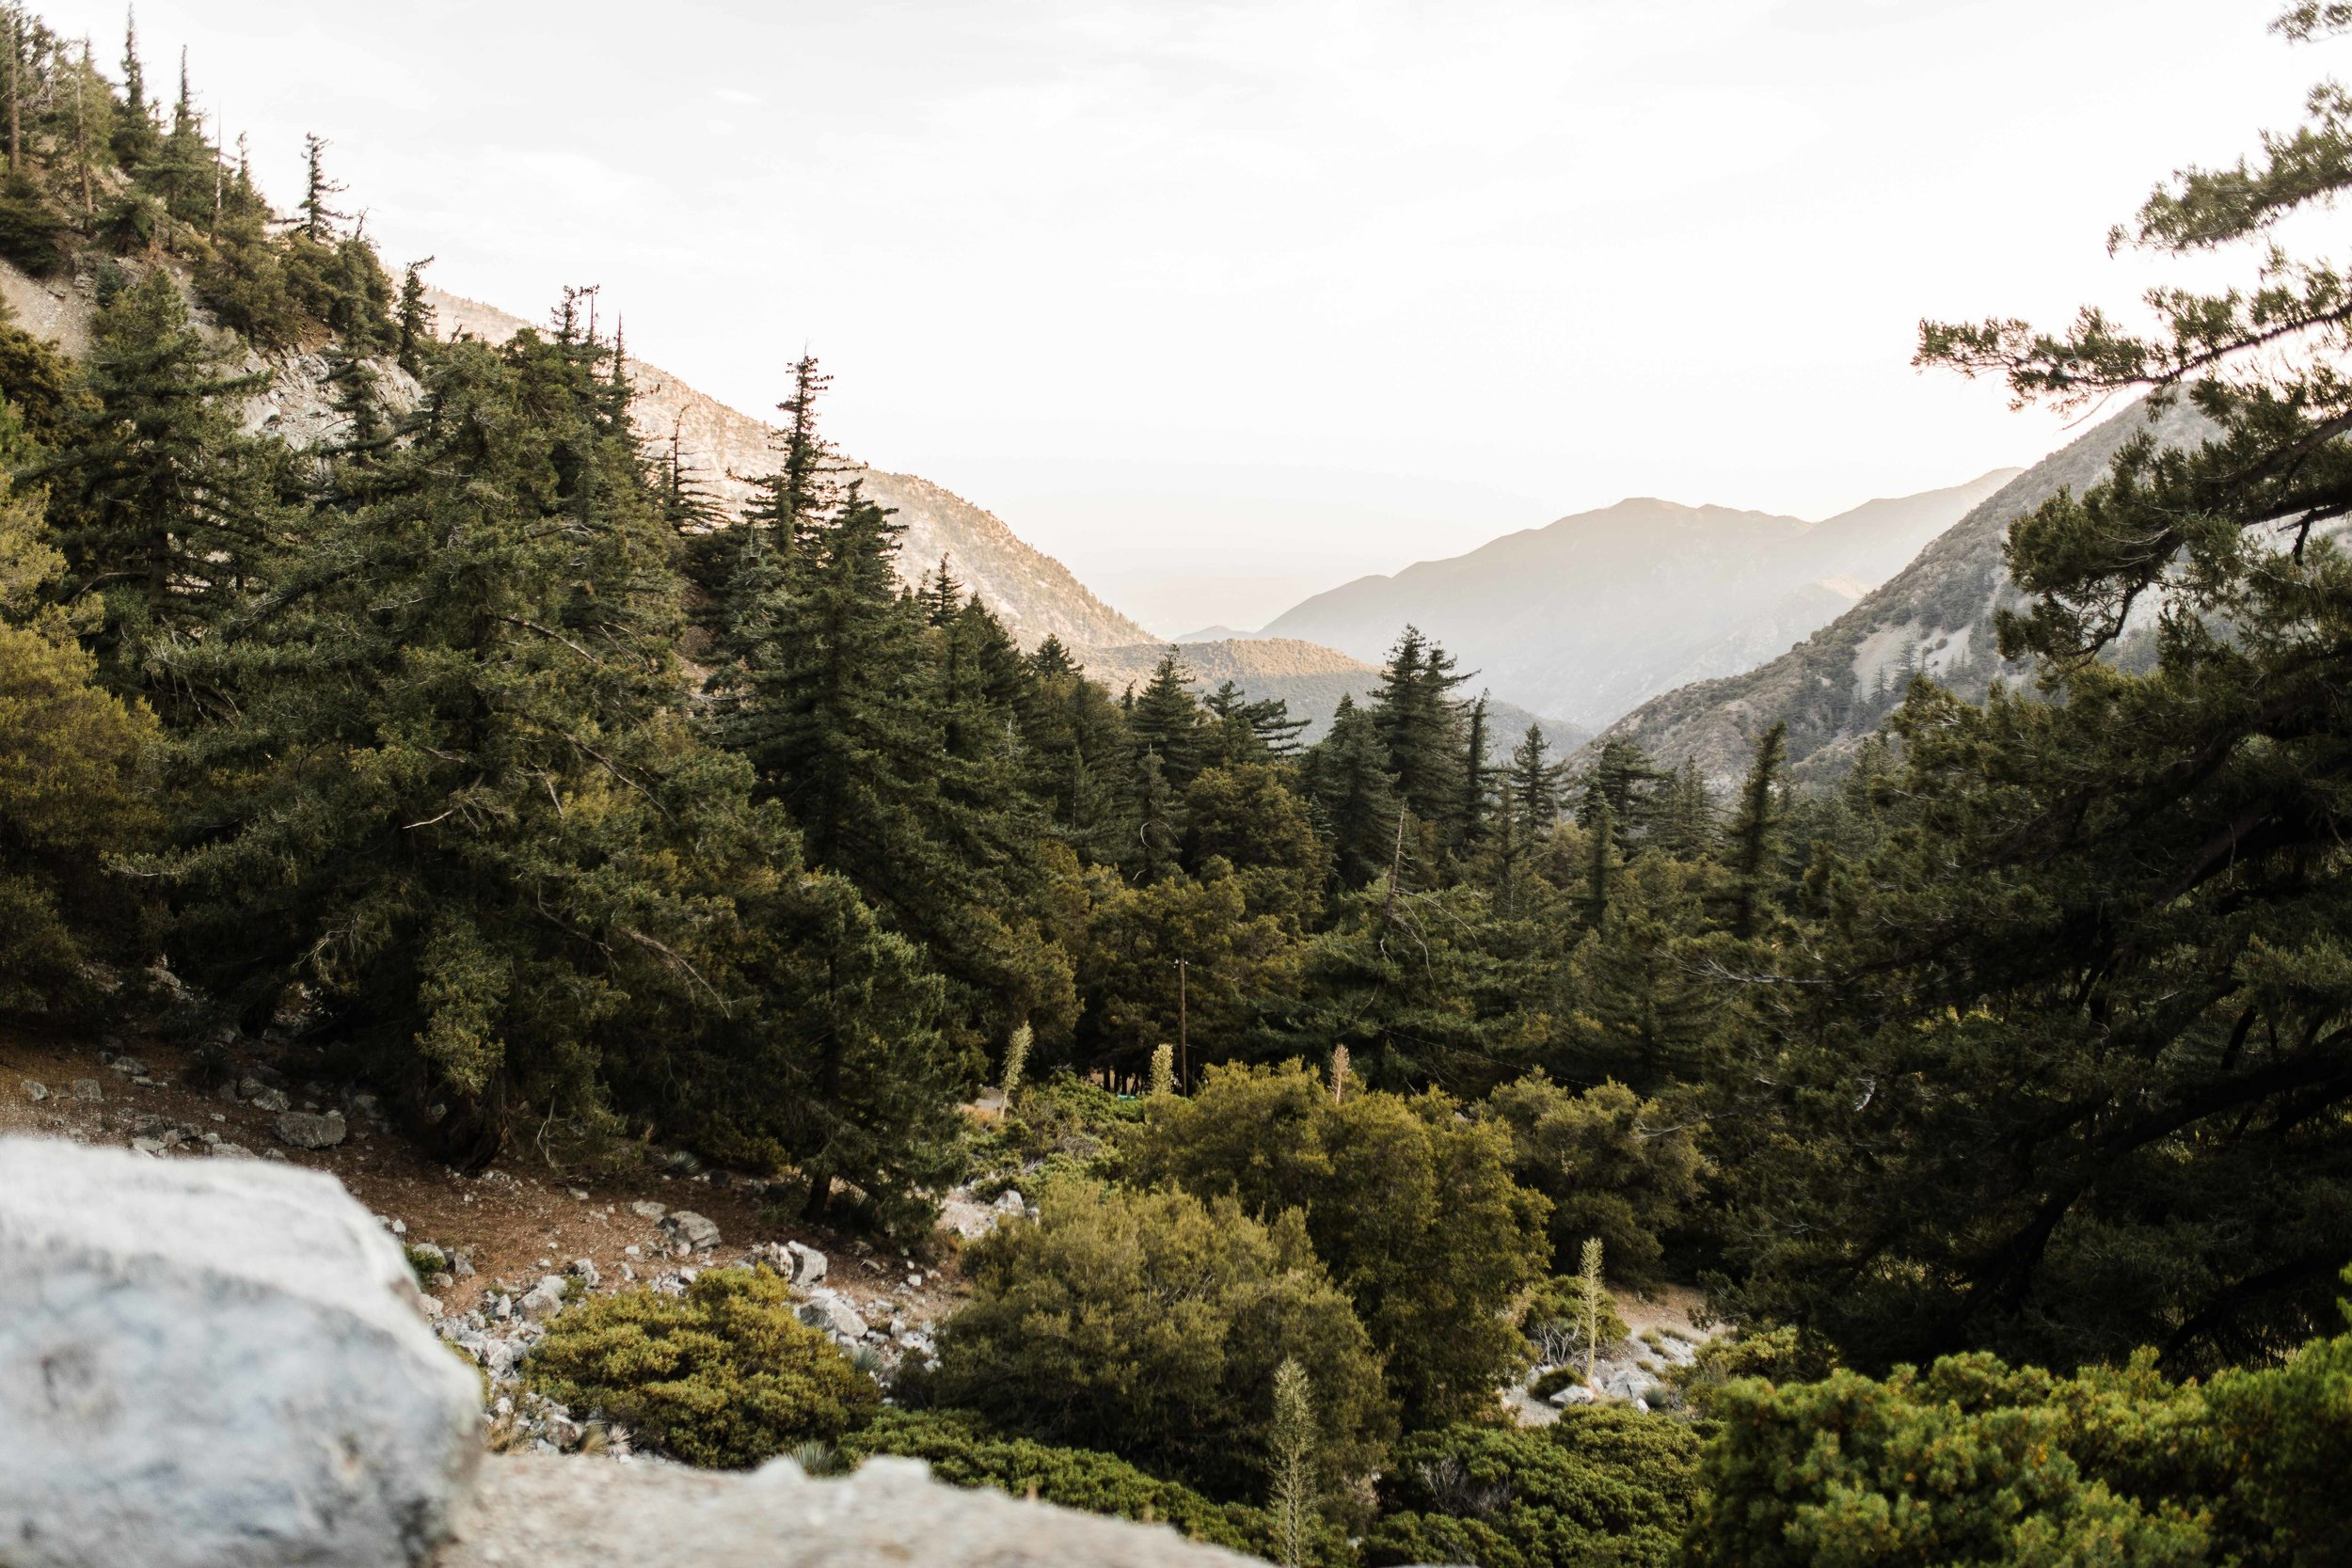 Rachael&Keith-Mount-Baldy-Engagement-Photos-Clarisse-Rae-Southern-California-Wedding-Photographer_59.jpg